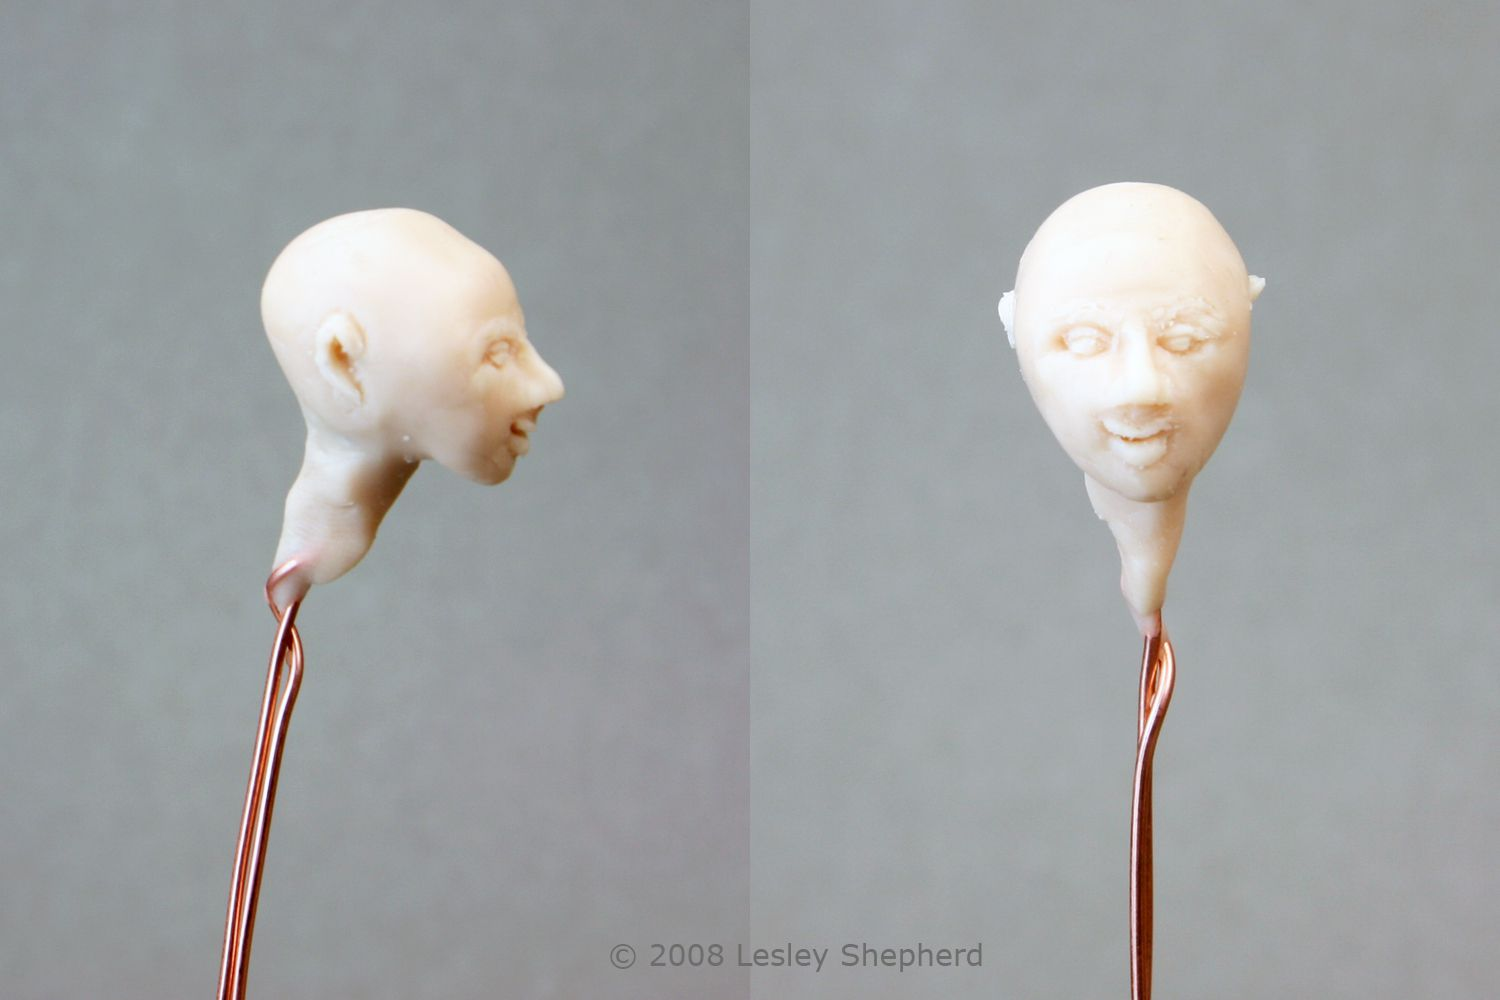 Adding a neck to and smoothing out the final features on a miniature doll head sculpture